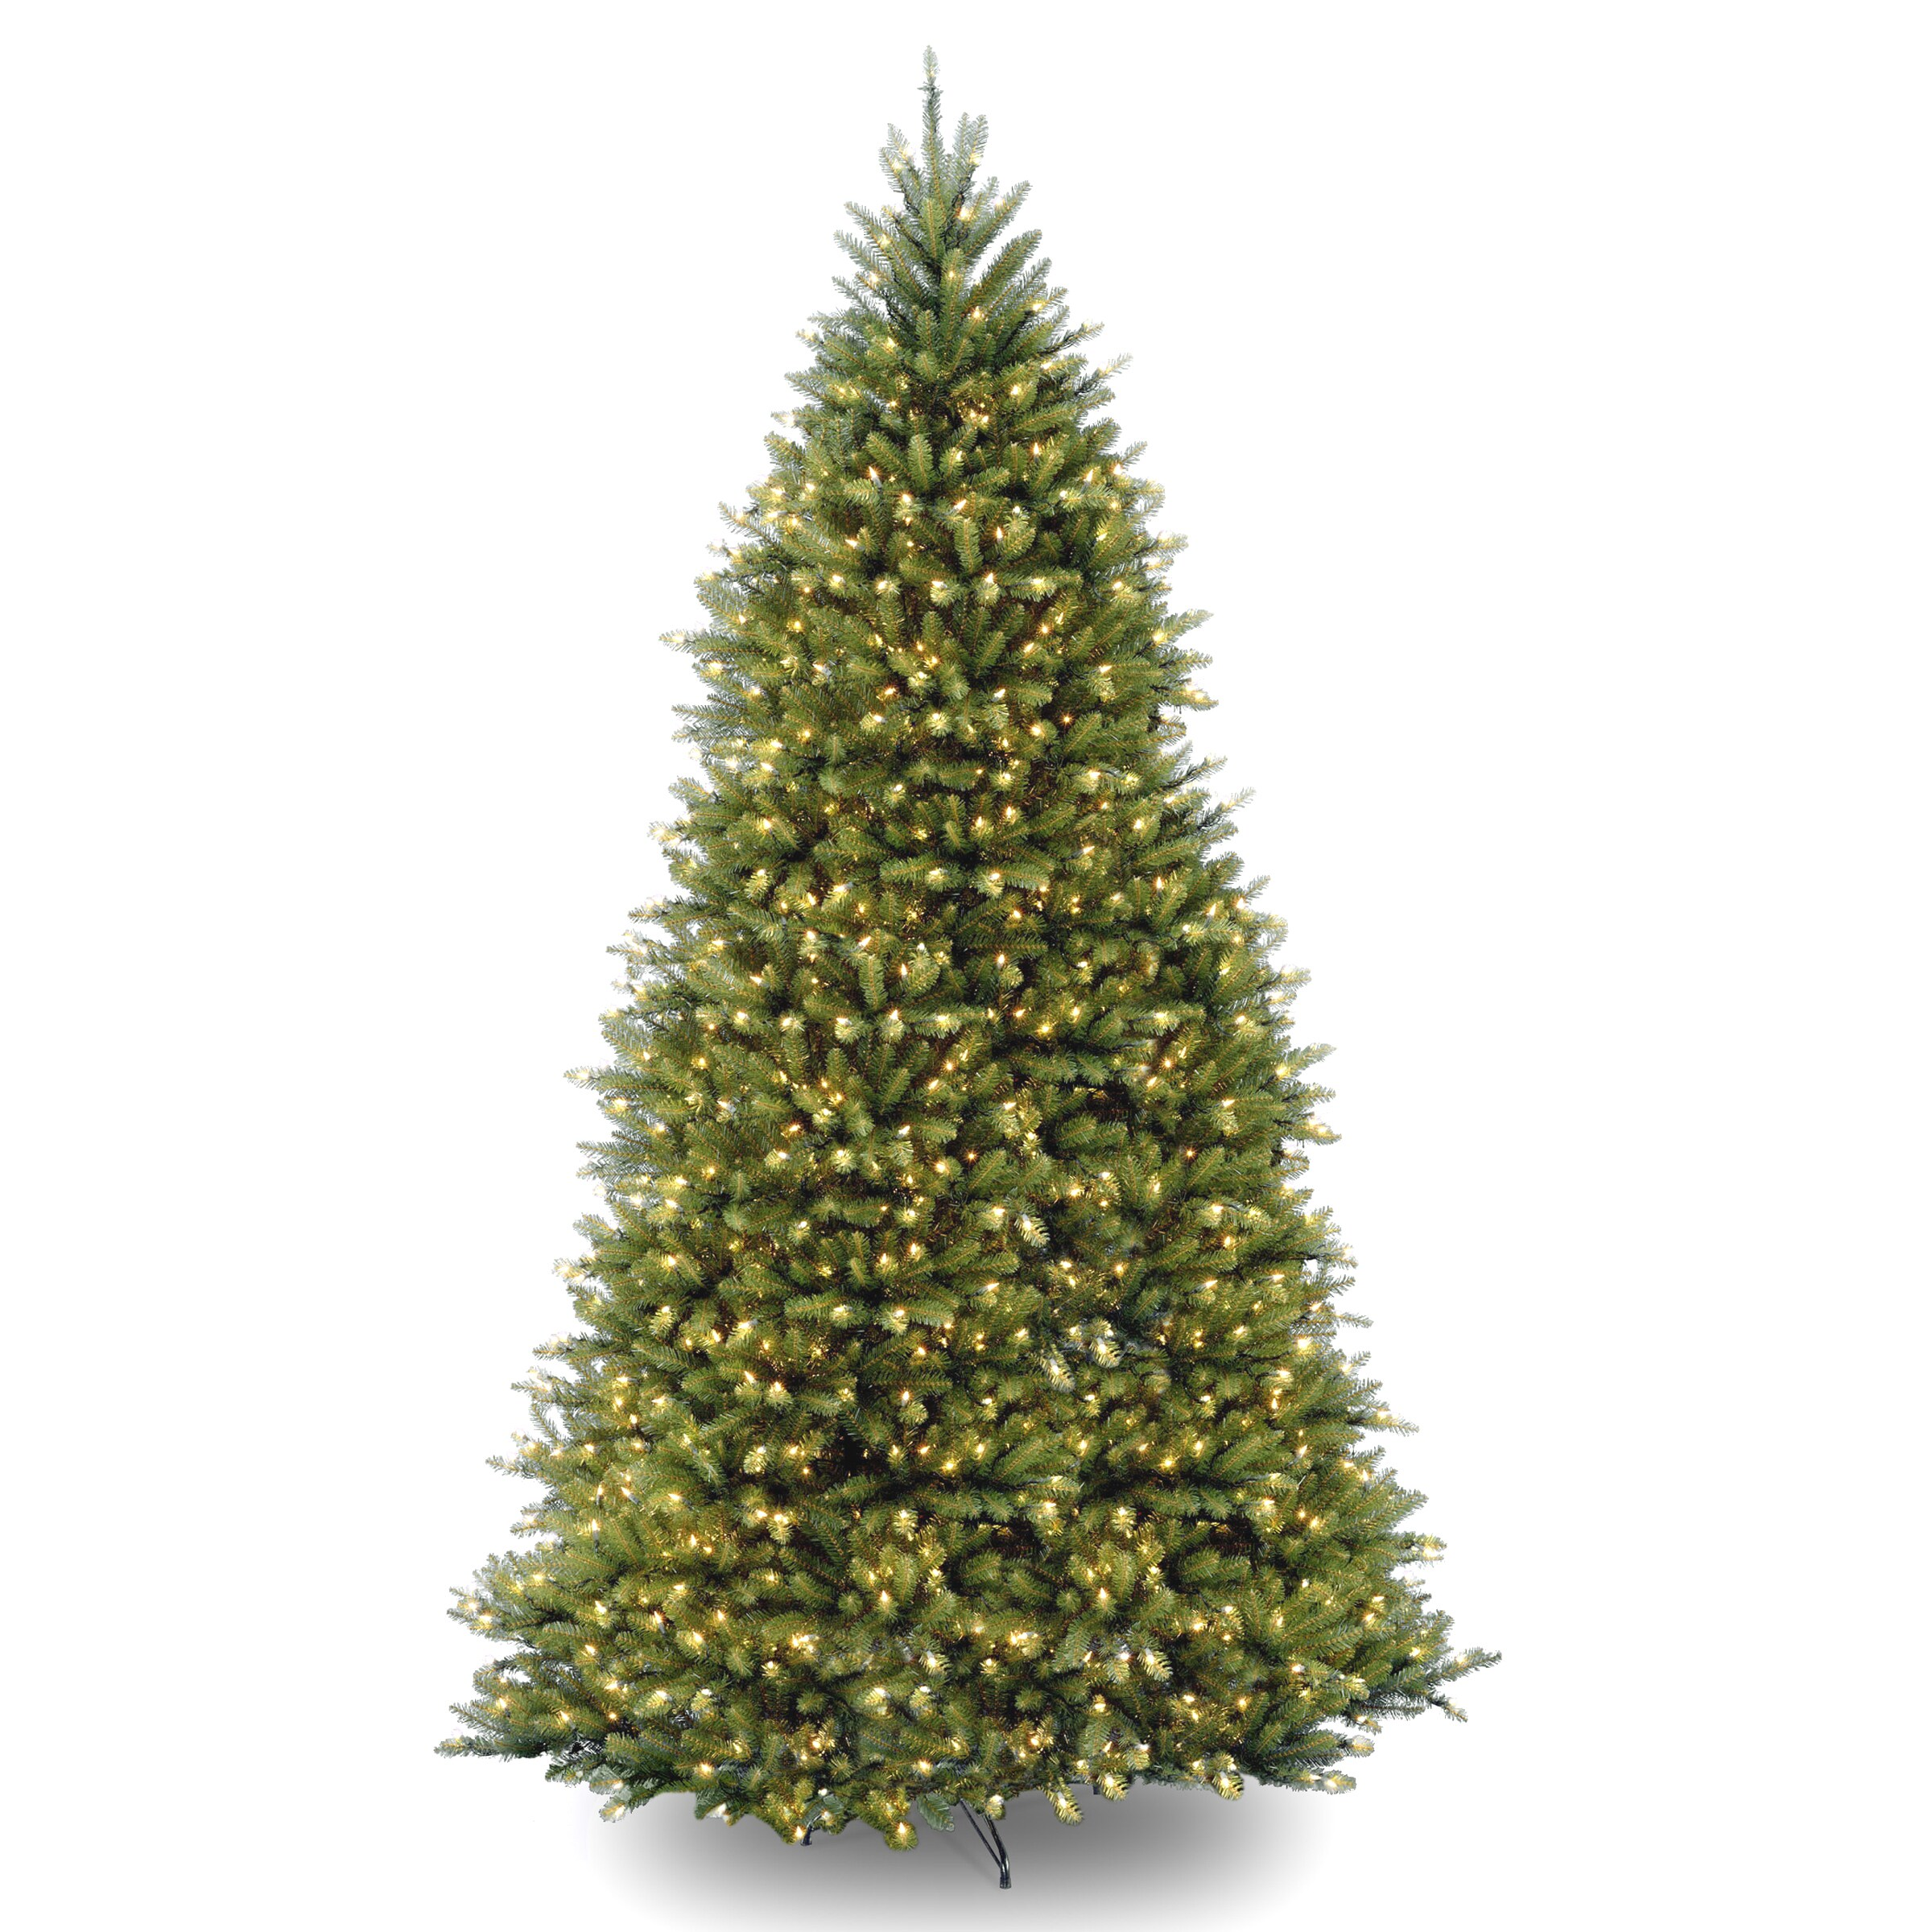 shop 10 foot dunhill fir tree with 1200 clear lights on sale free shipping today overstockcom 9426341 - How To Decorate A 10 Foot Christmas Tree